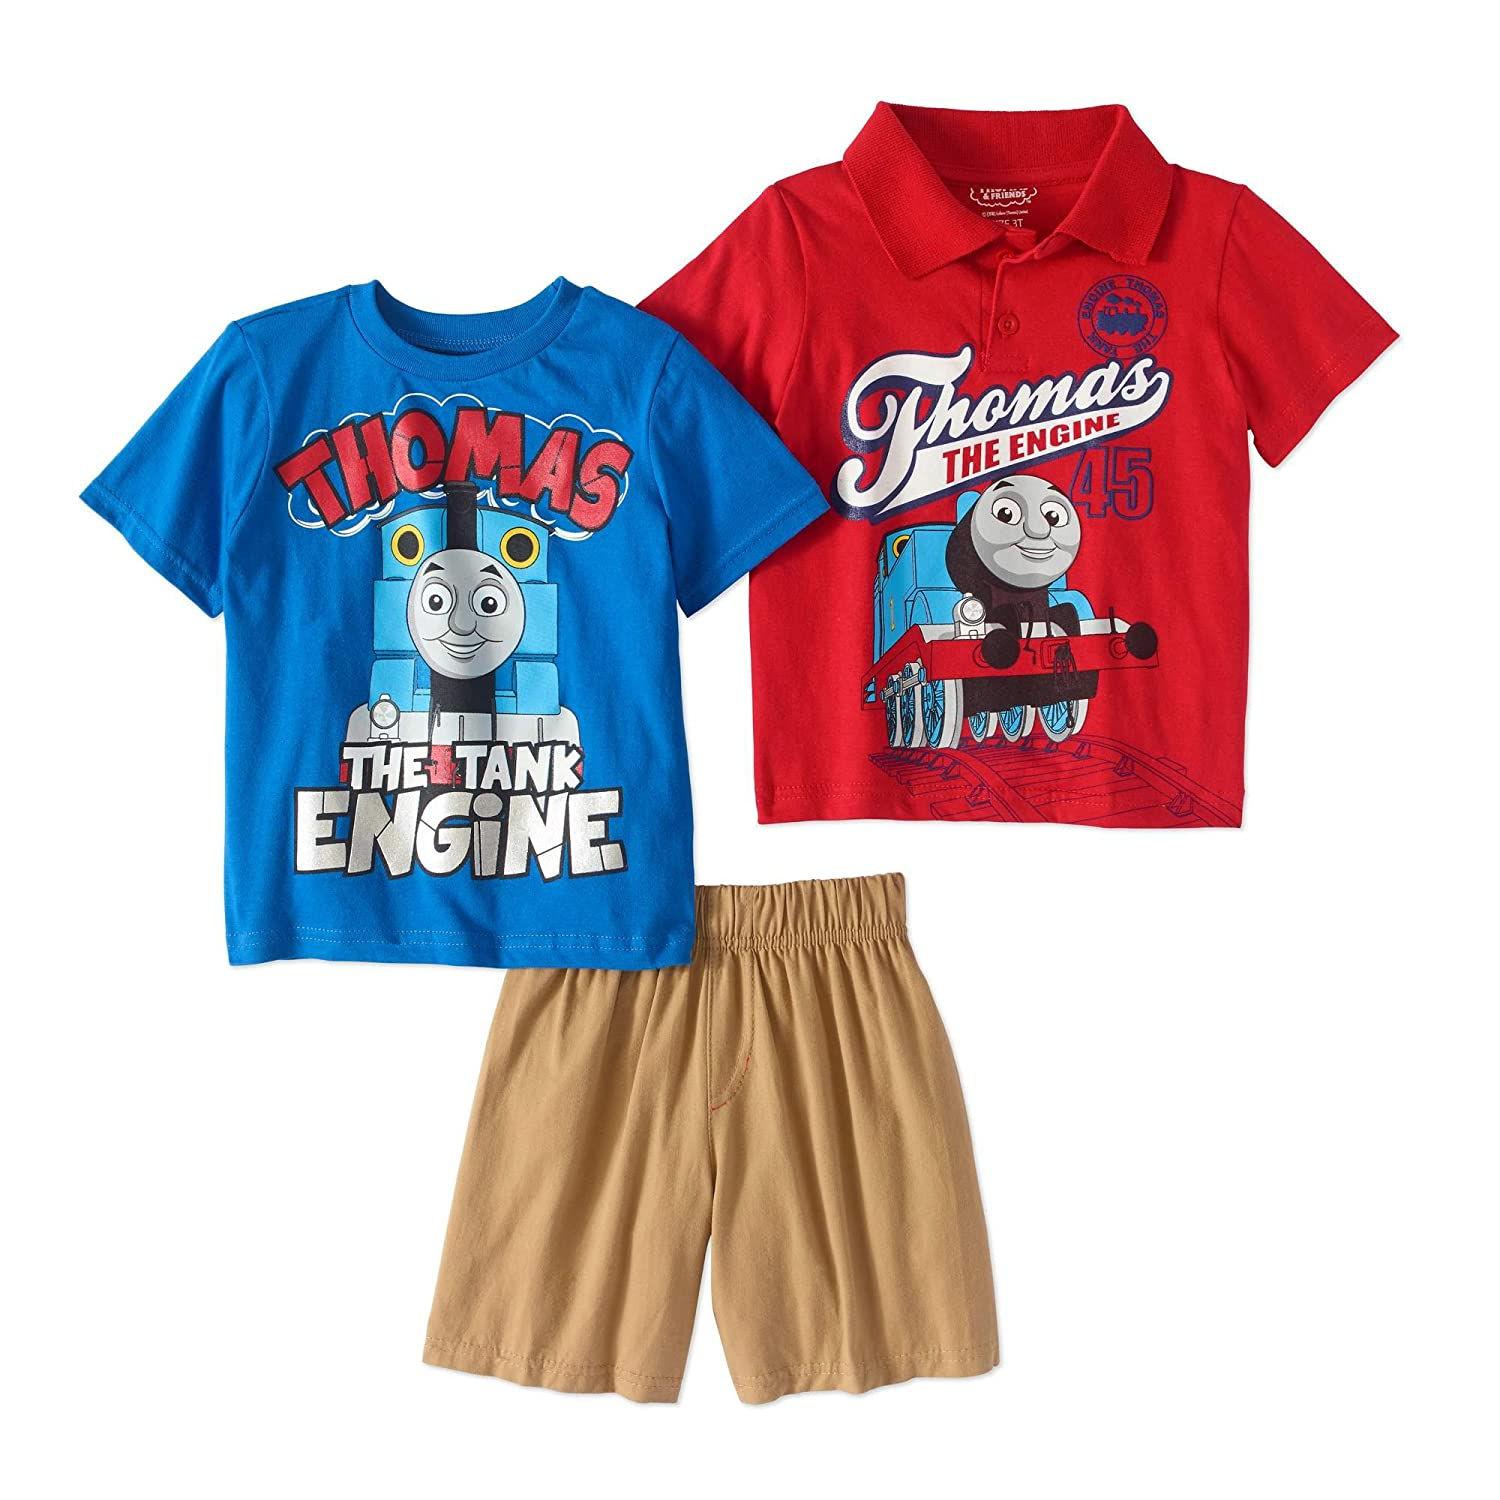 Thomas The Train Toddler Boys Polo Shirt T Shirt Shorts 3PC Outfit Set